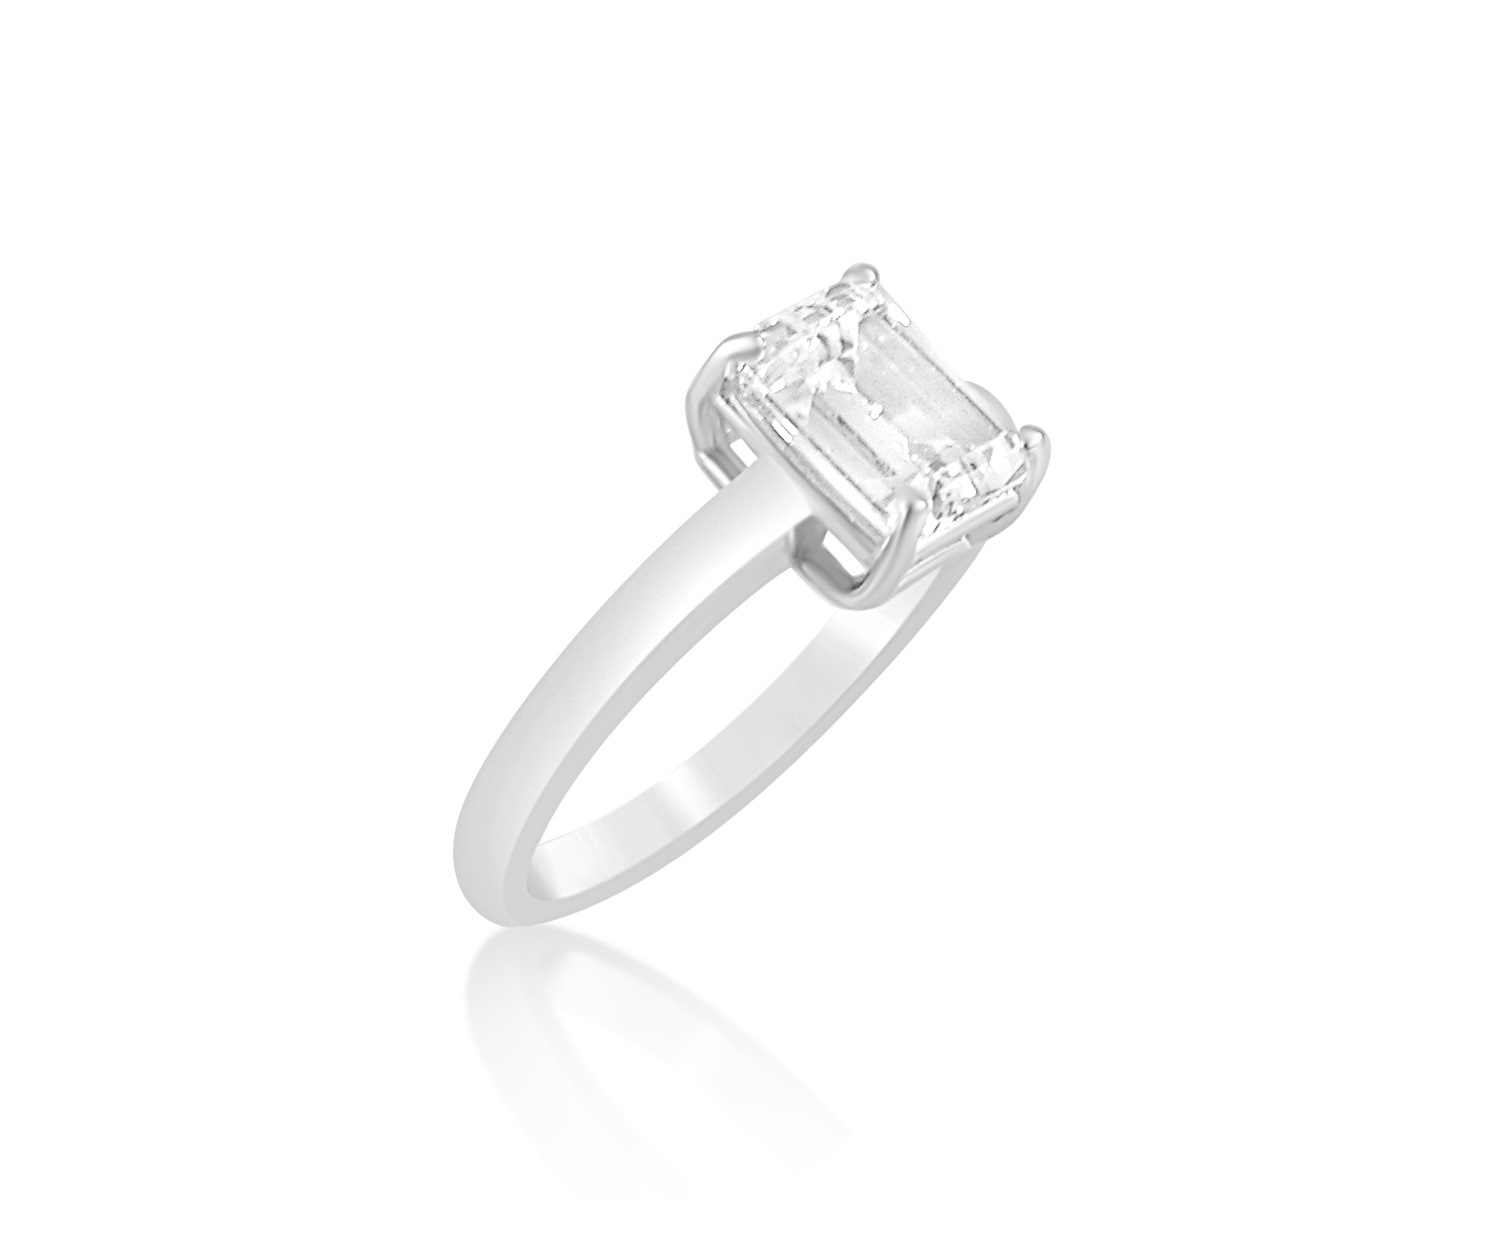 18 karat white gold engagement ring with zirconia